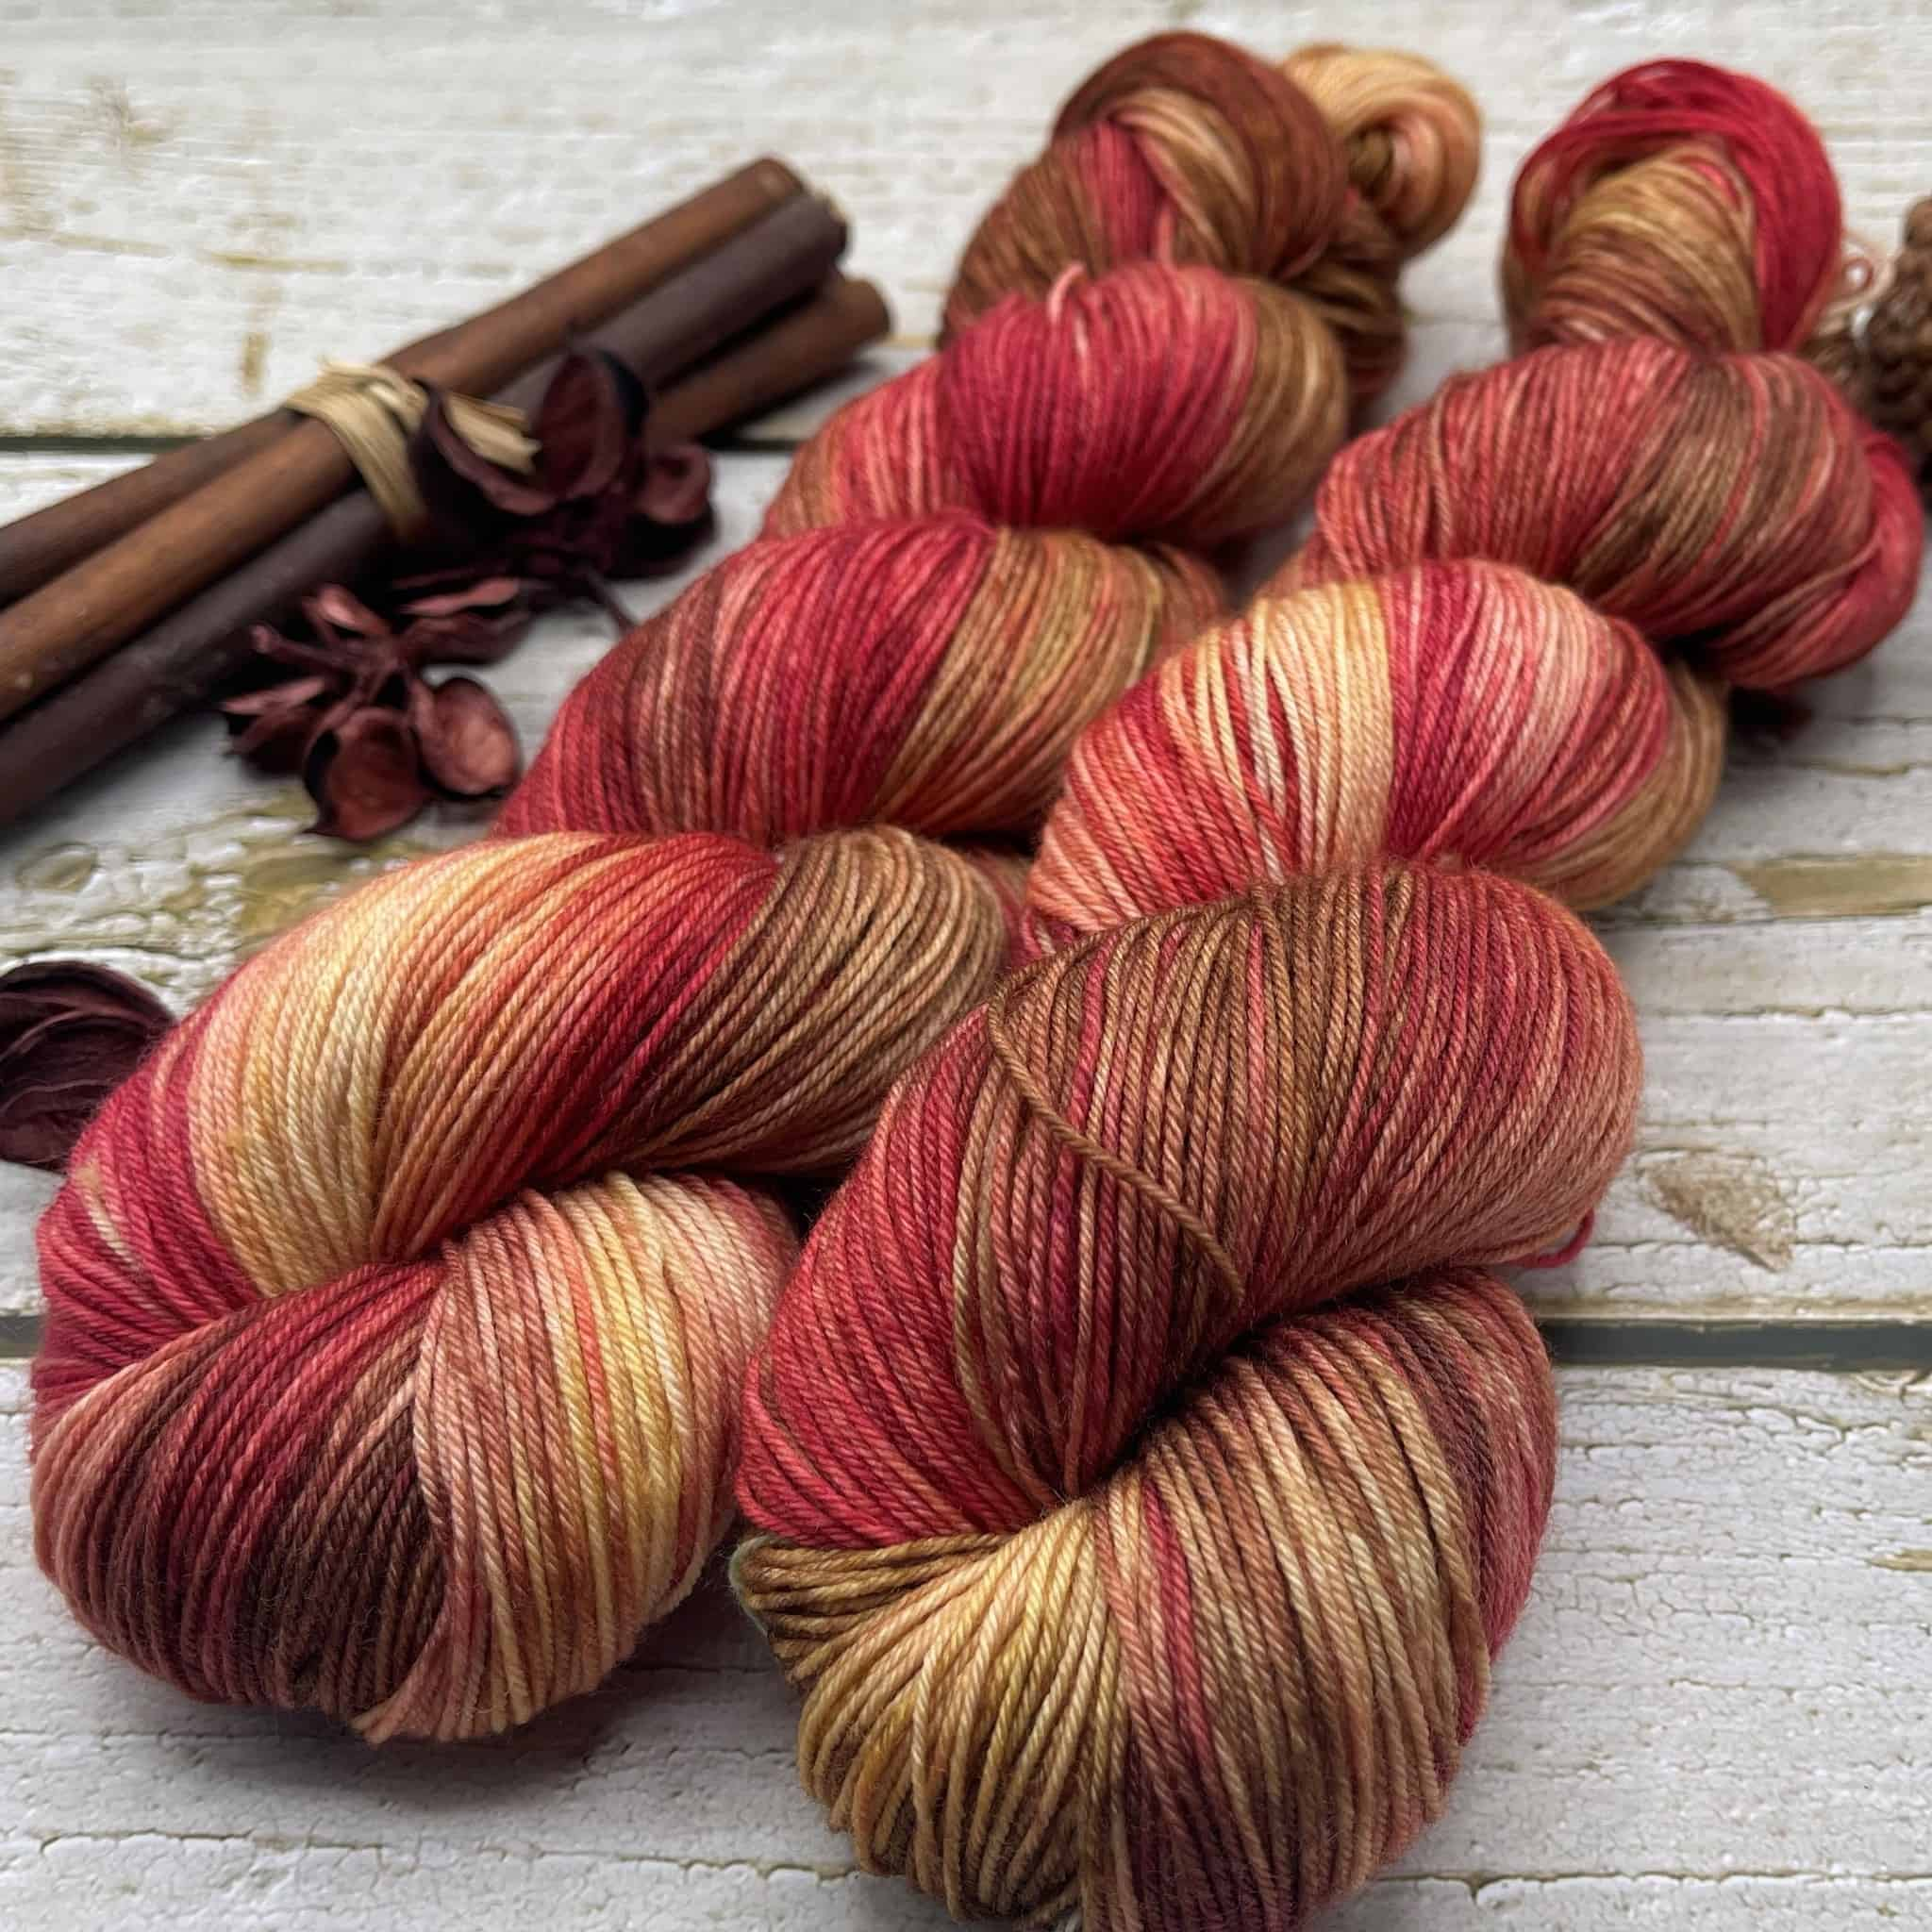 Yarn in red, orange and gold.